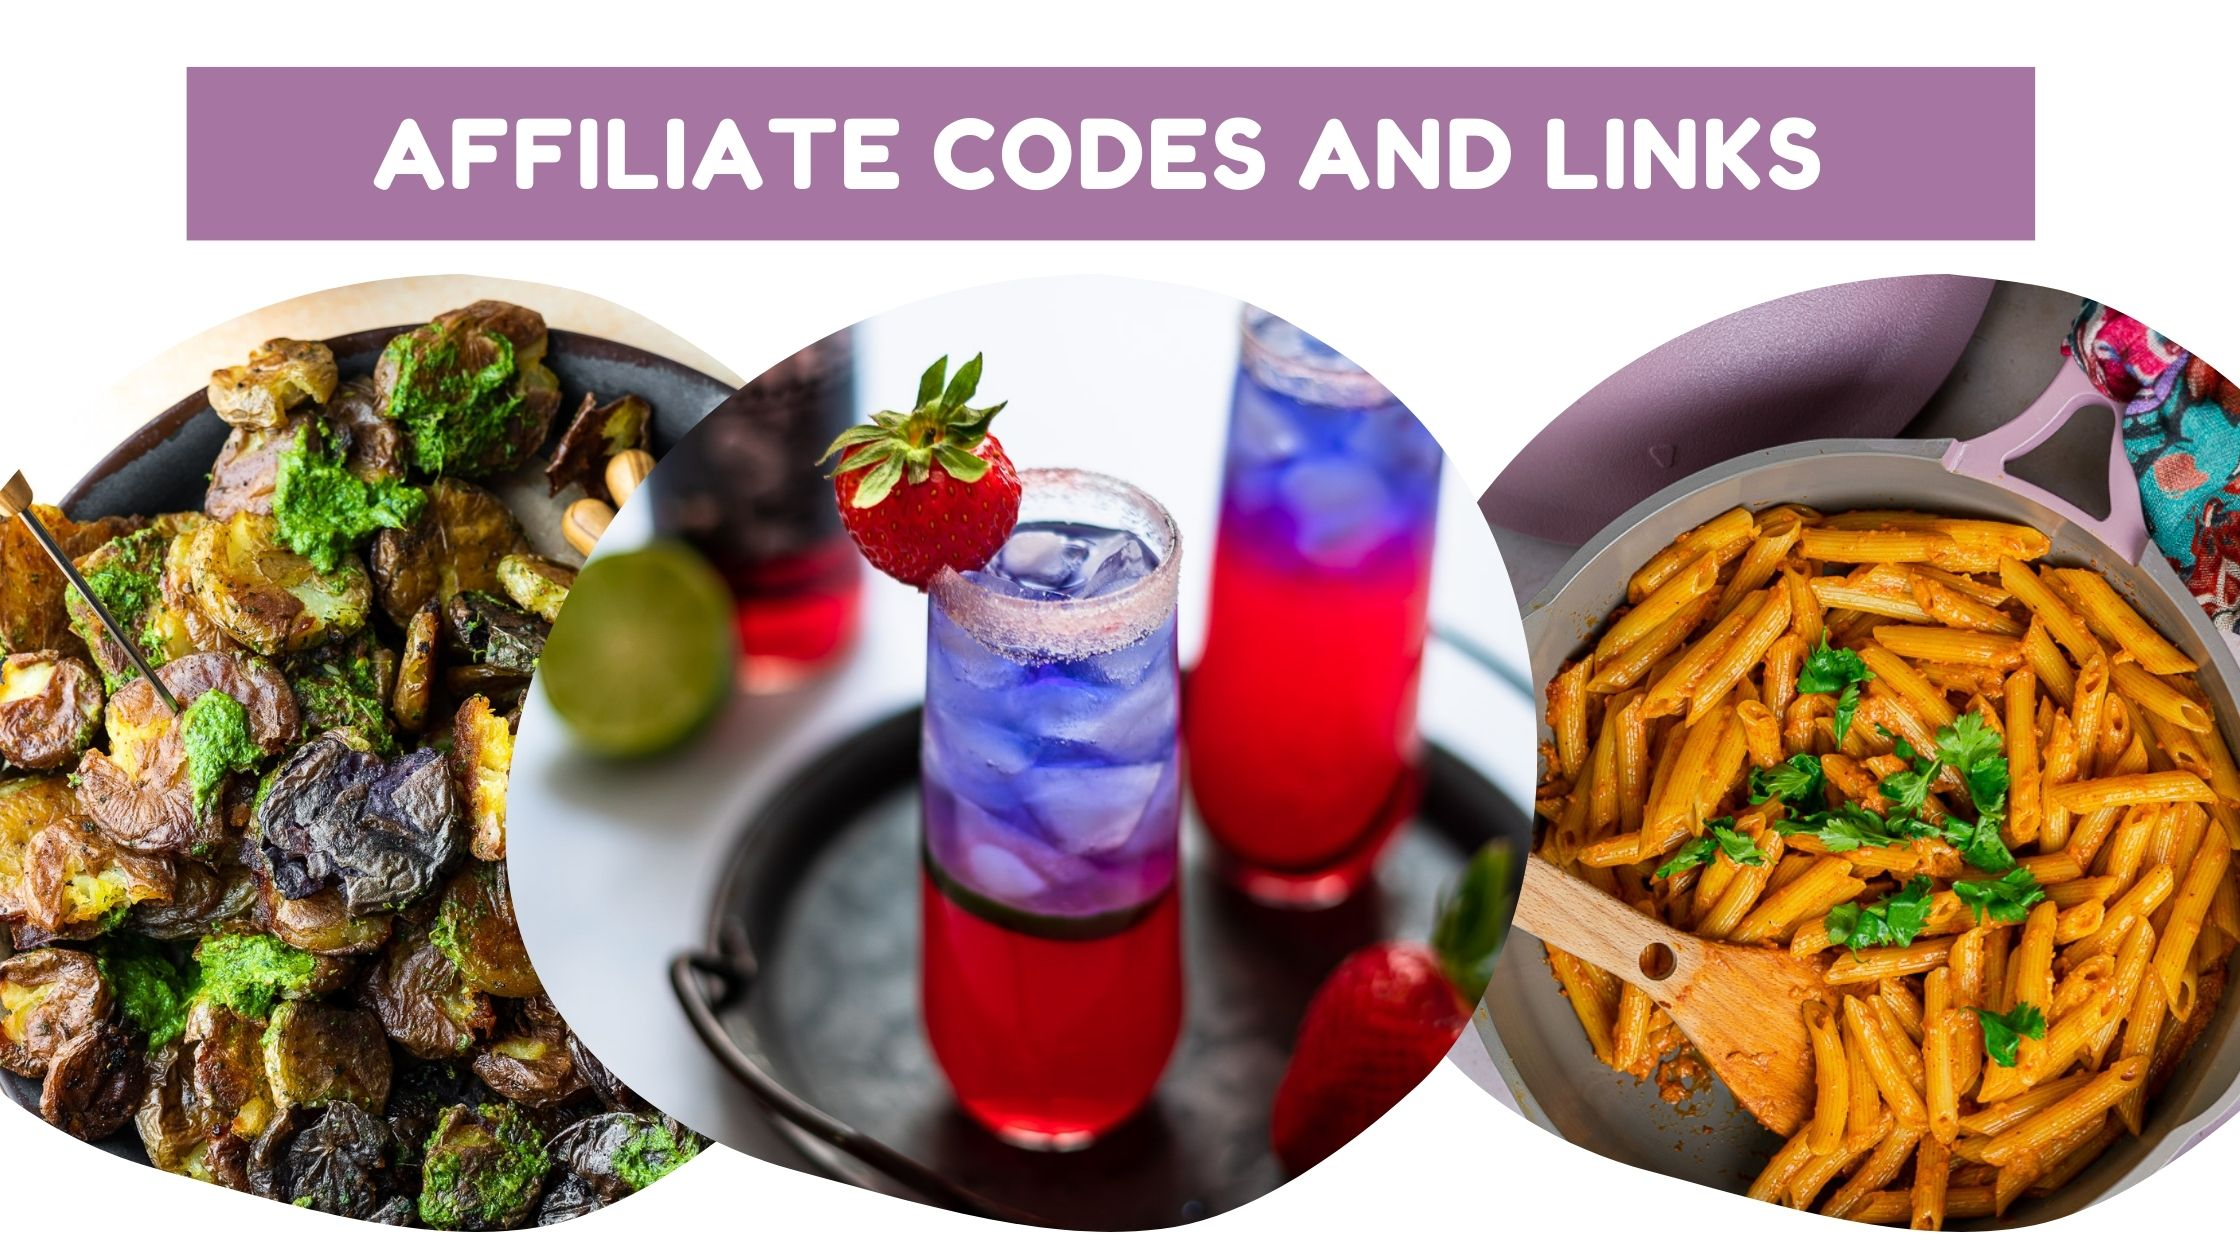 Affiliate Codes and Links